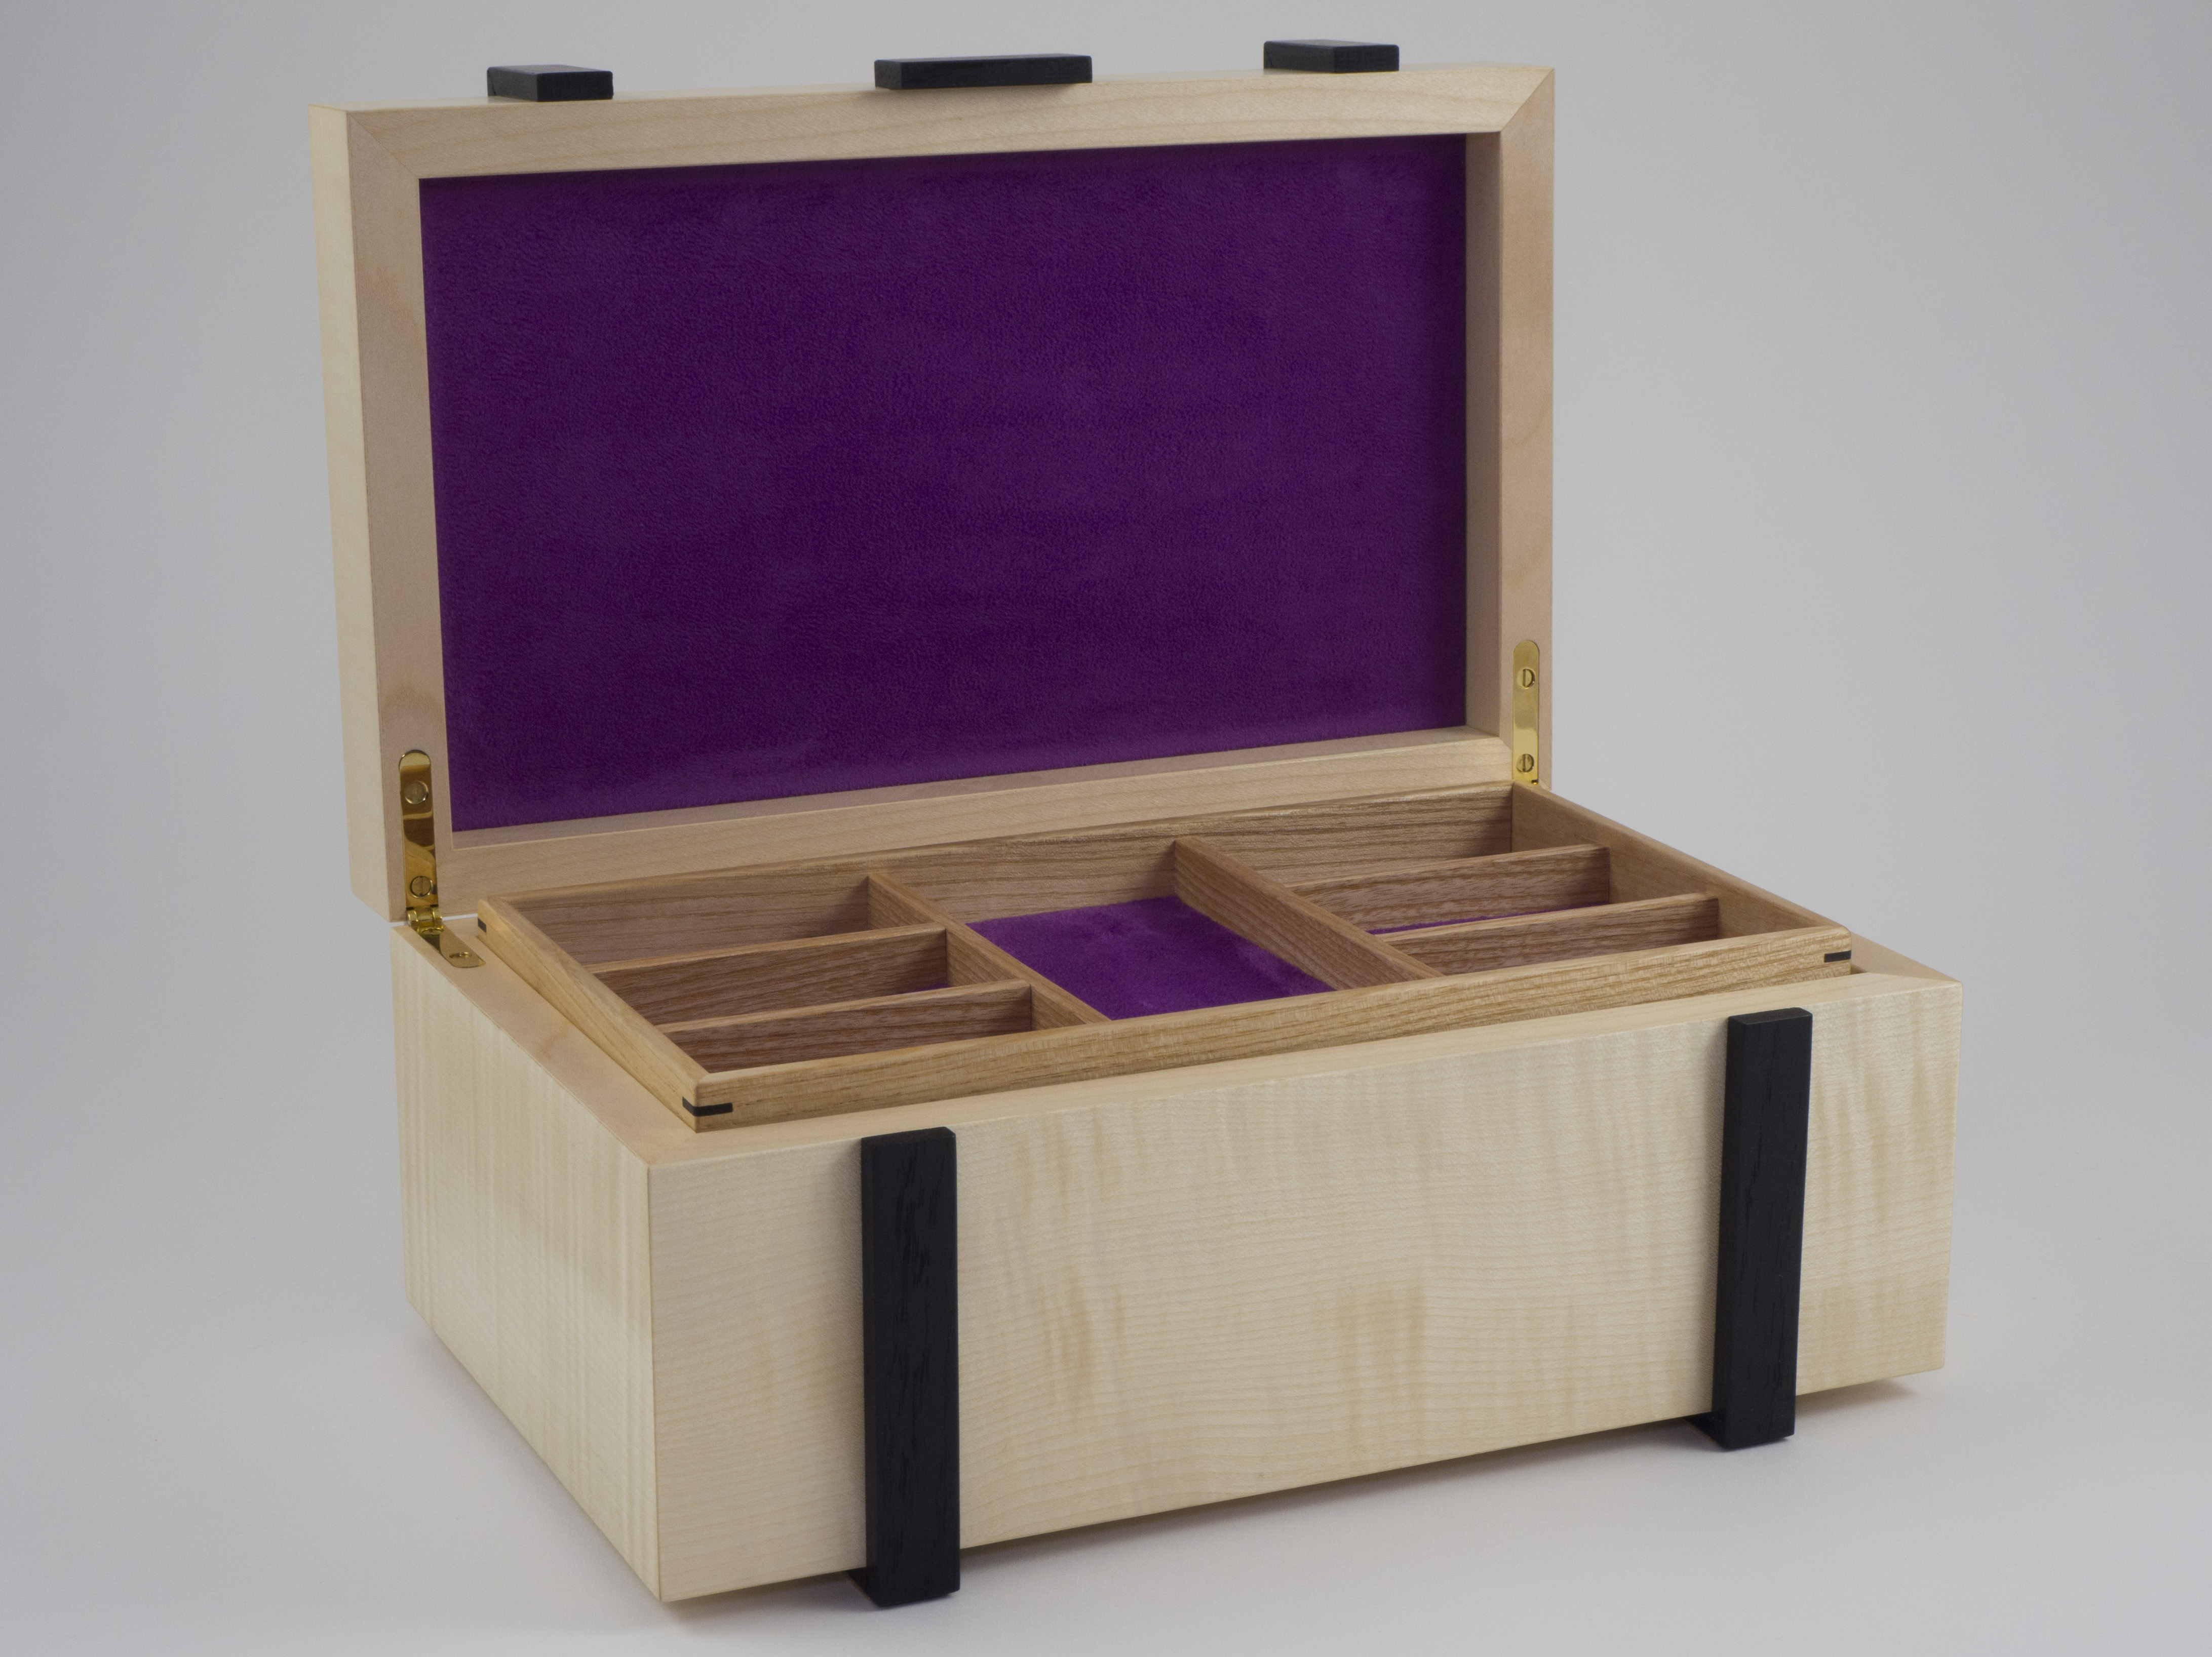 Jewellery box open, showing top tray